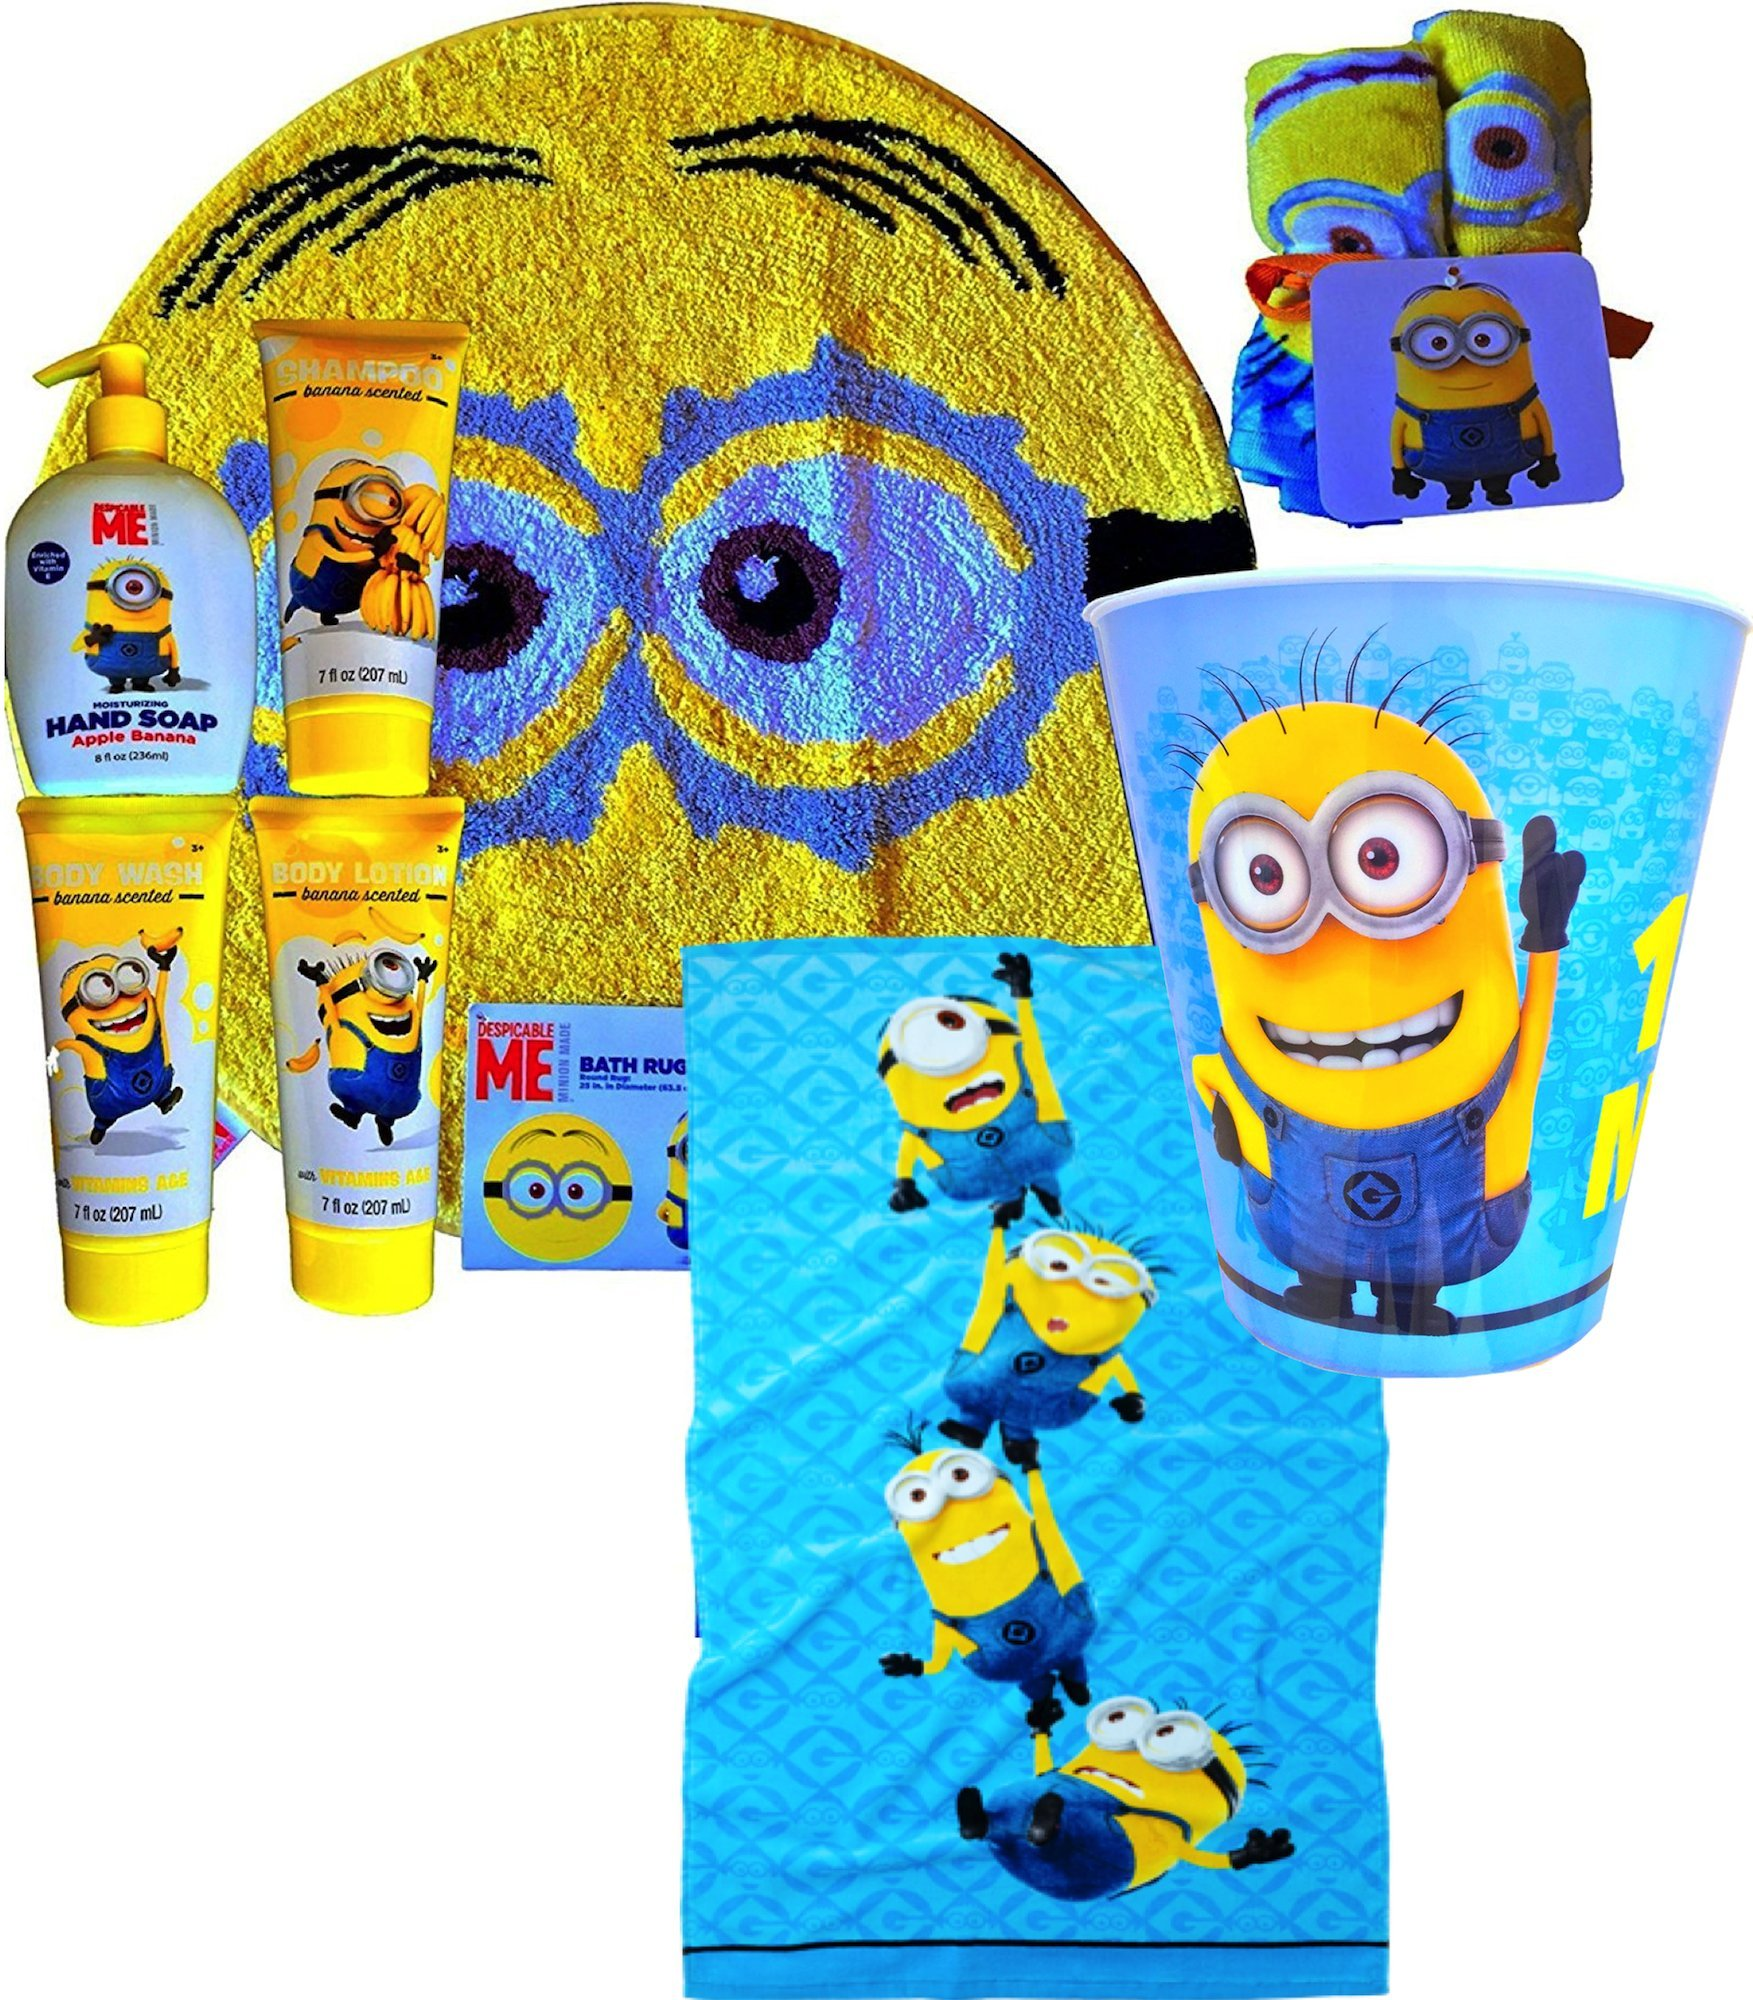 Despicable me minions themed ultimate children's bathroom accessory gift set inlcudes bath rug , 6pack washcloth, large hand towel, wastebasket and bananna scented 4 pack, shampoo , hand soap , body wash, body lotion great quality gift set